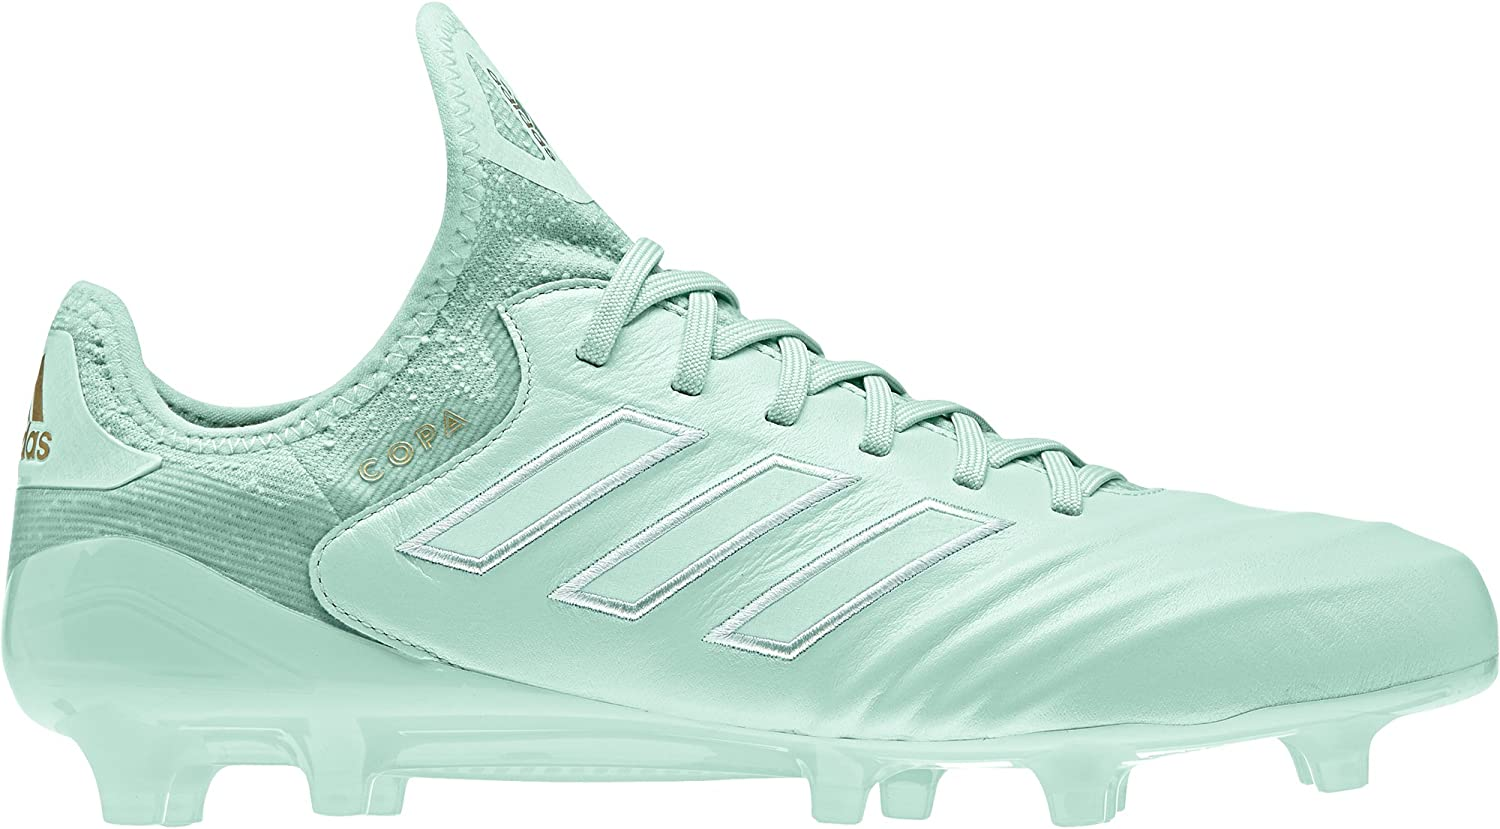 Adidas Copa 18.1 Firm Ground Cleat - Men's Soccer 9 Clear Mint gold Metallic